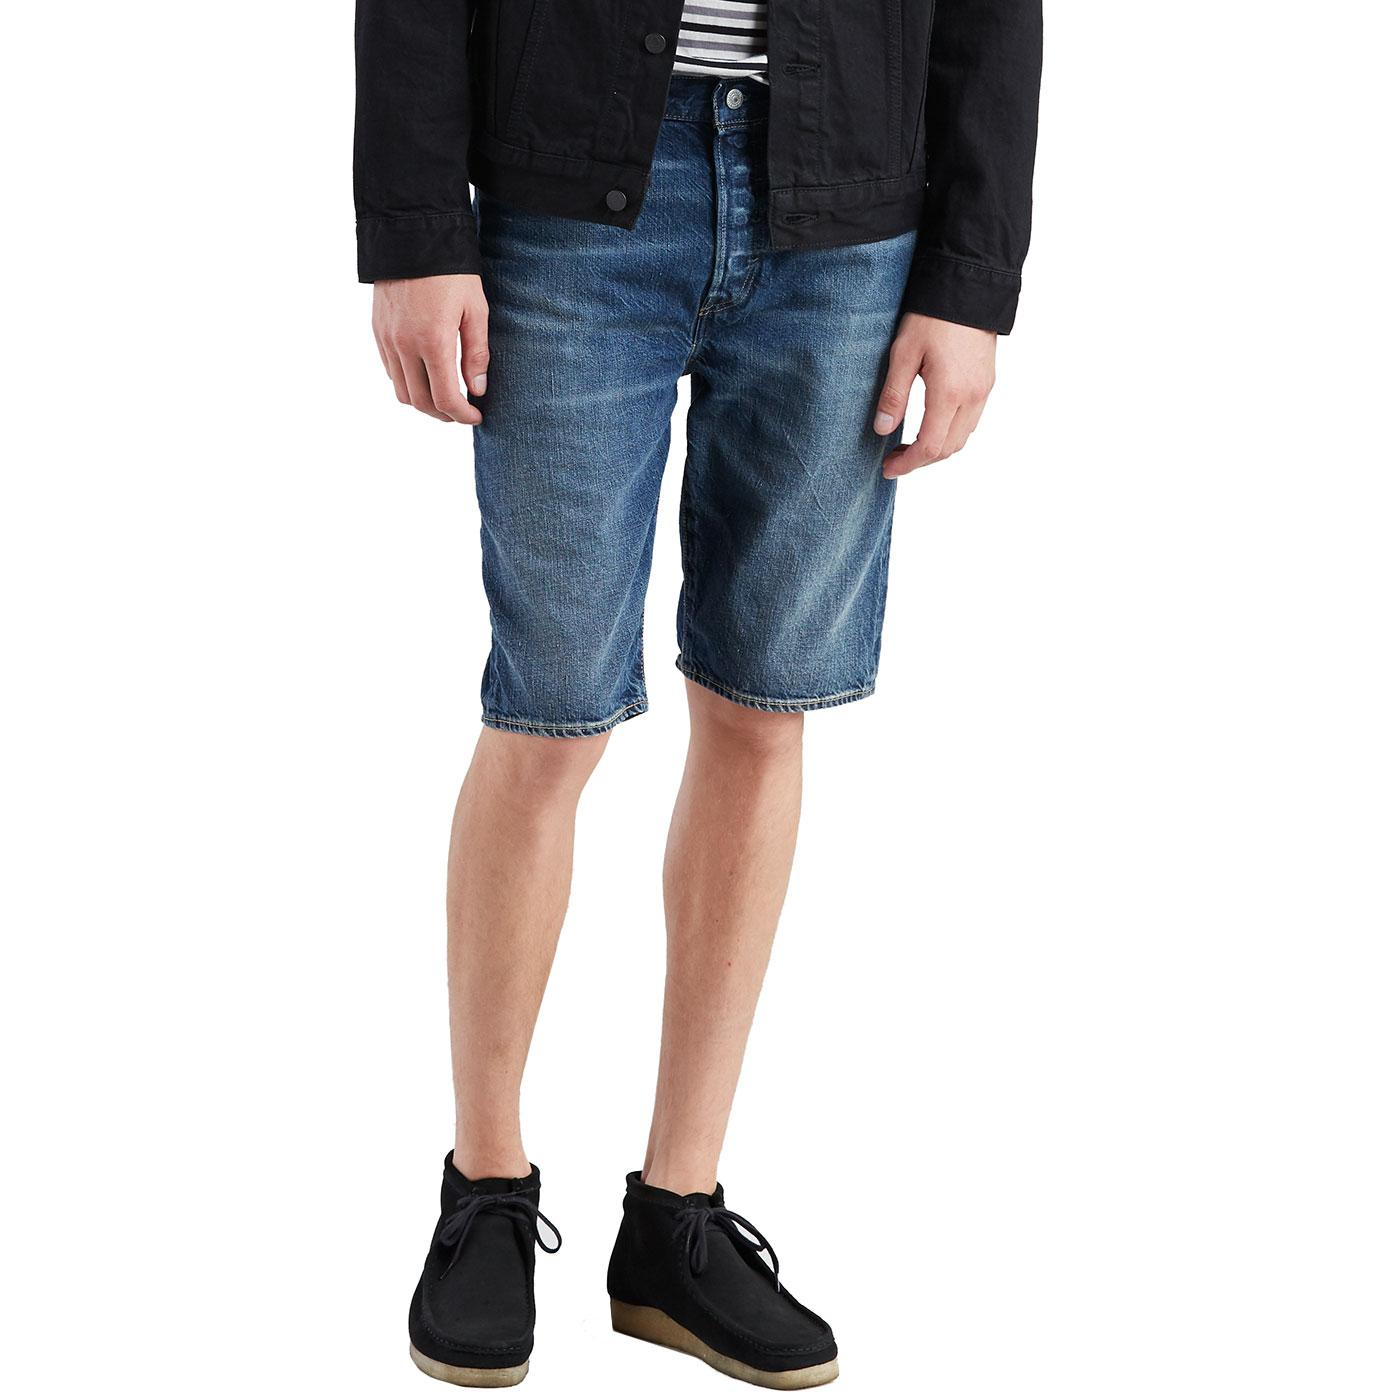 LEVI'S 501 Retro Denim Hemmed Shorts (Sour Patch)